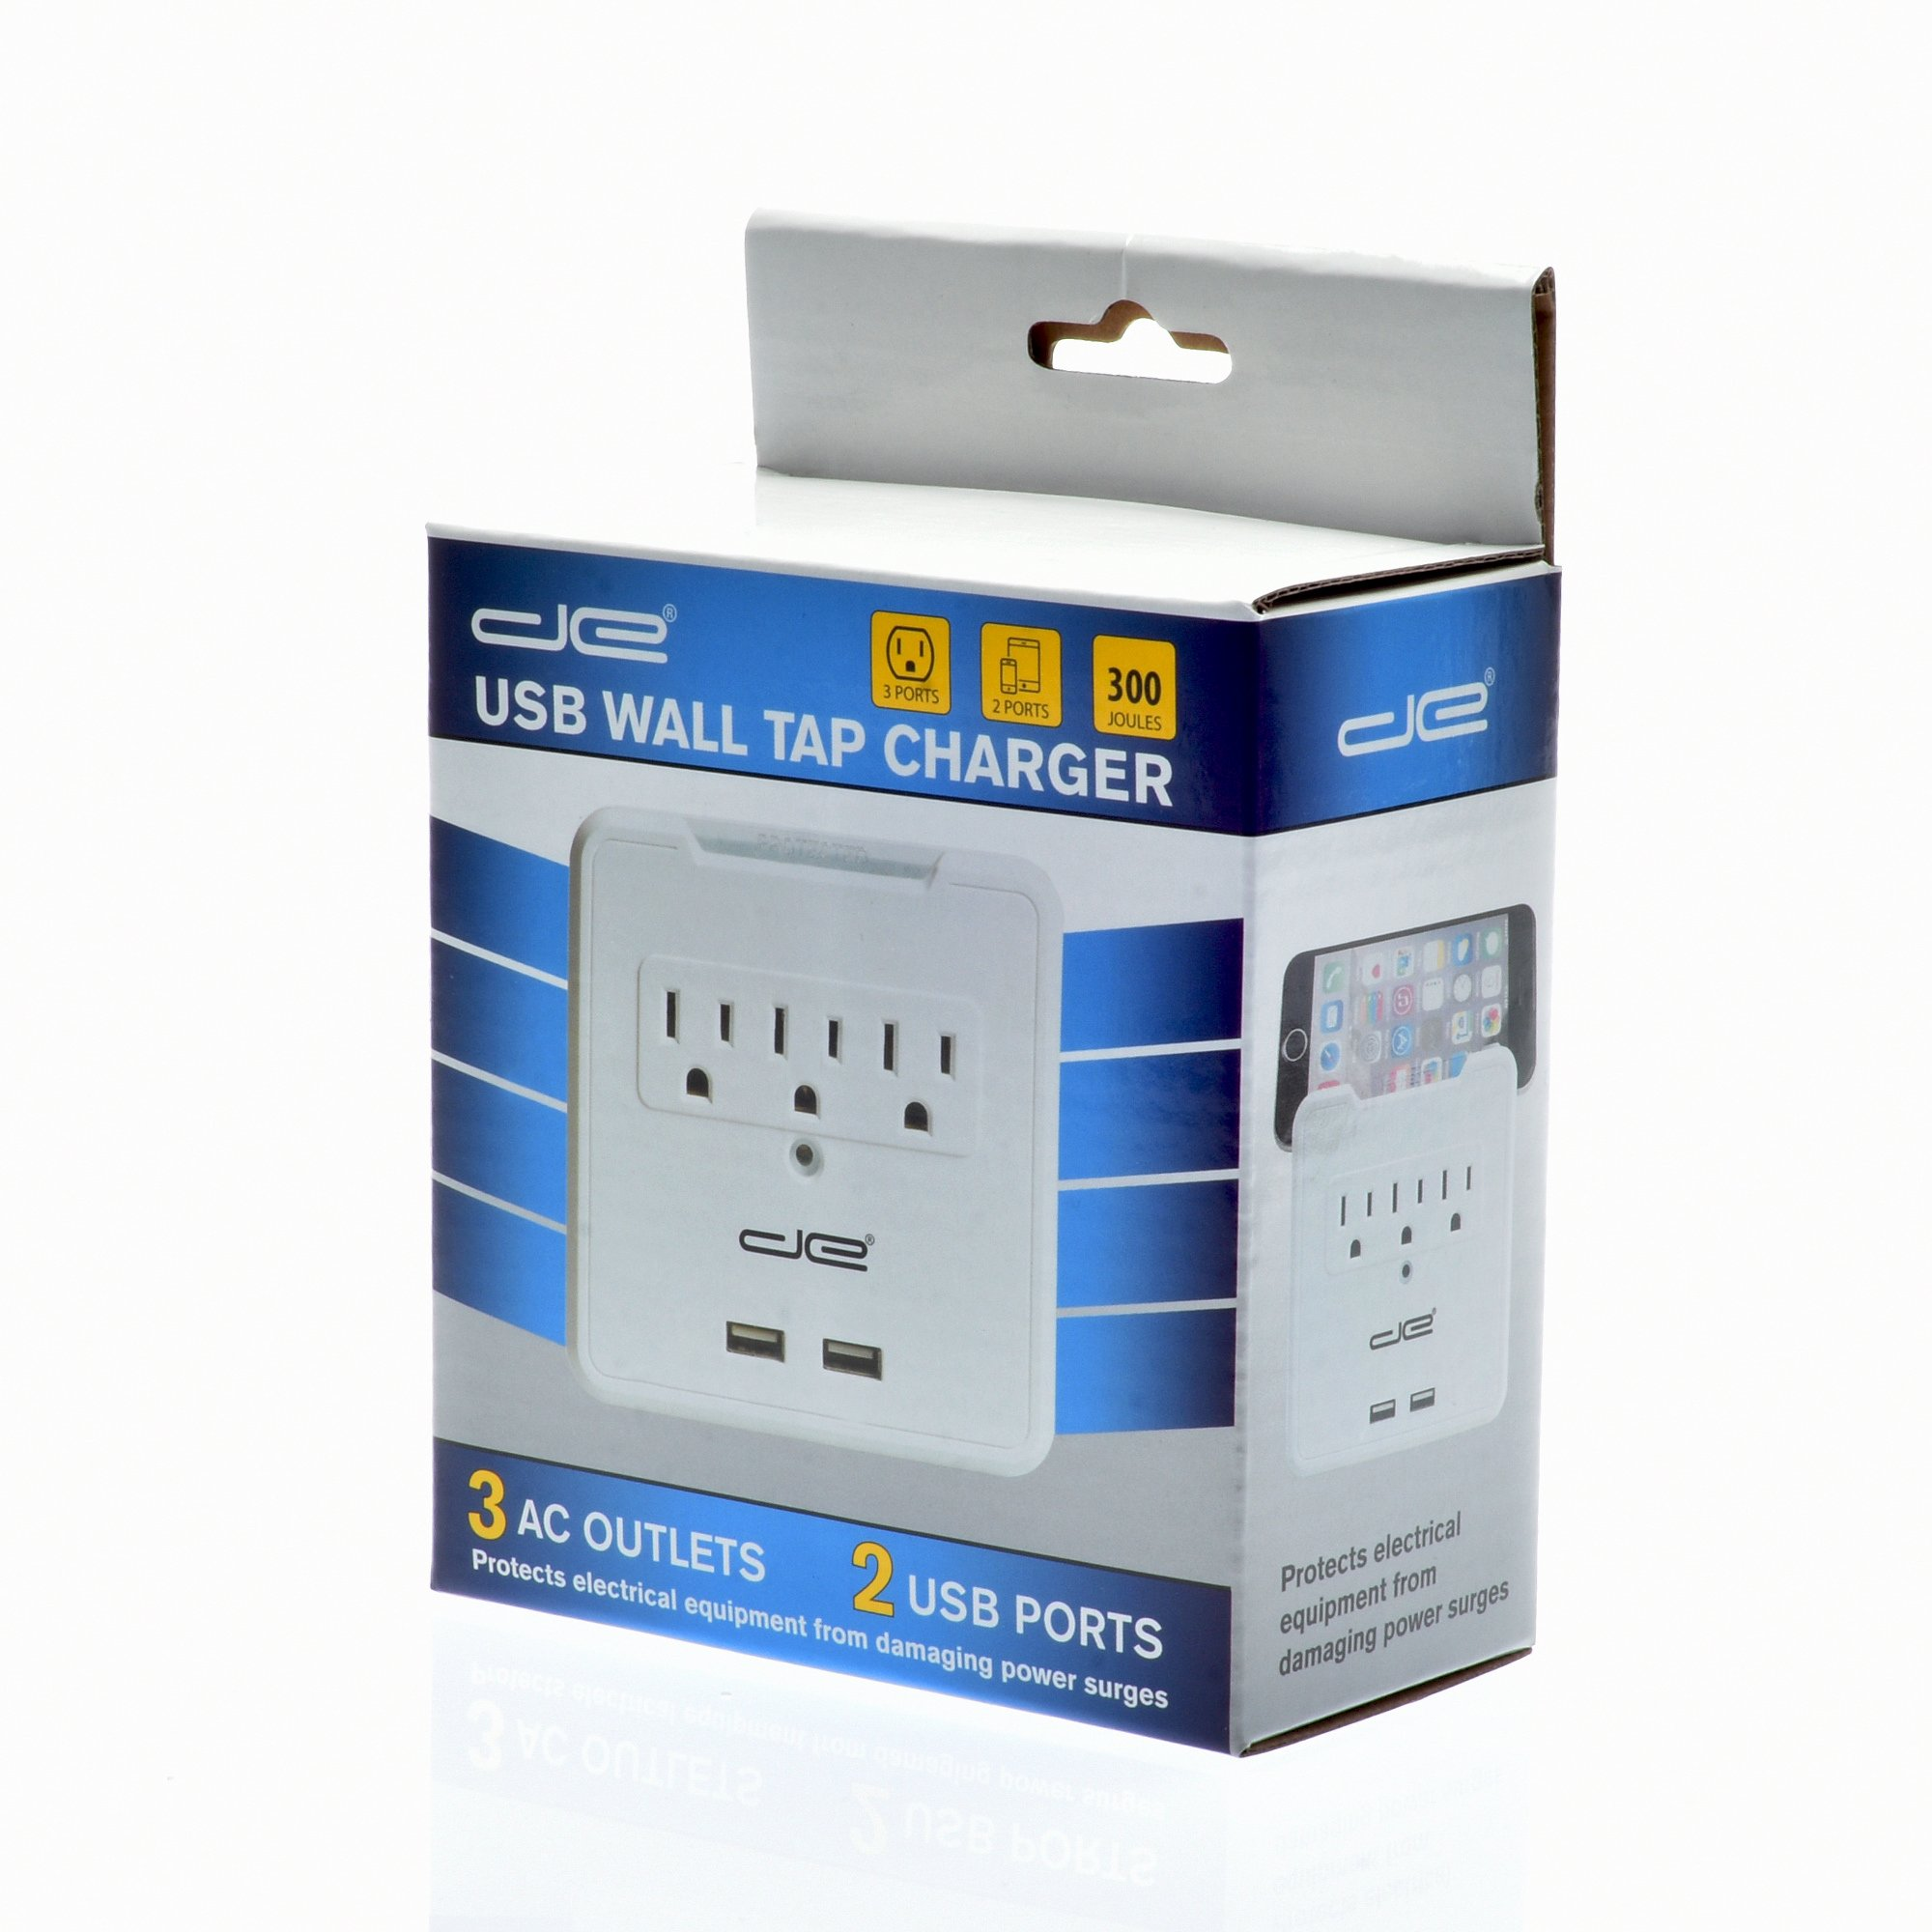 Digital Energy Direct Wall Surge Protector - 3 AC Outlets and 2 USB Charging Ports | 300 Joules of Protection from Voltage Spikes & Surges